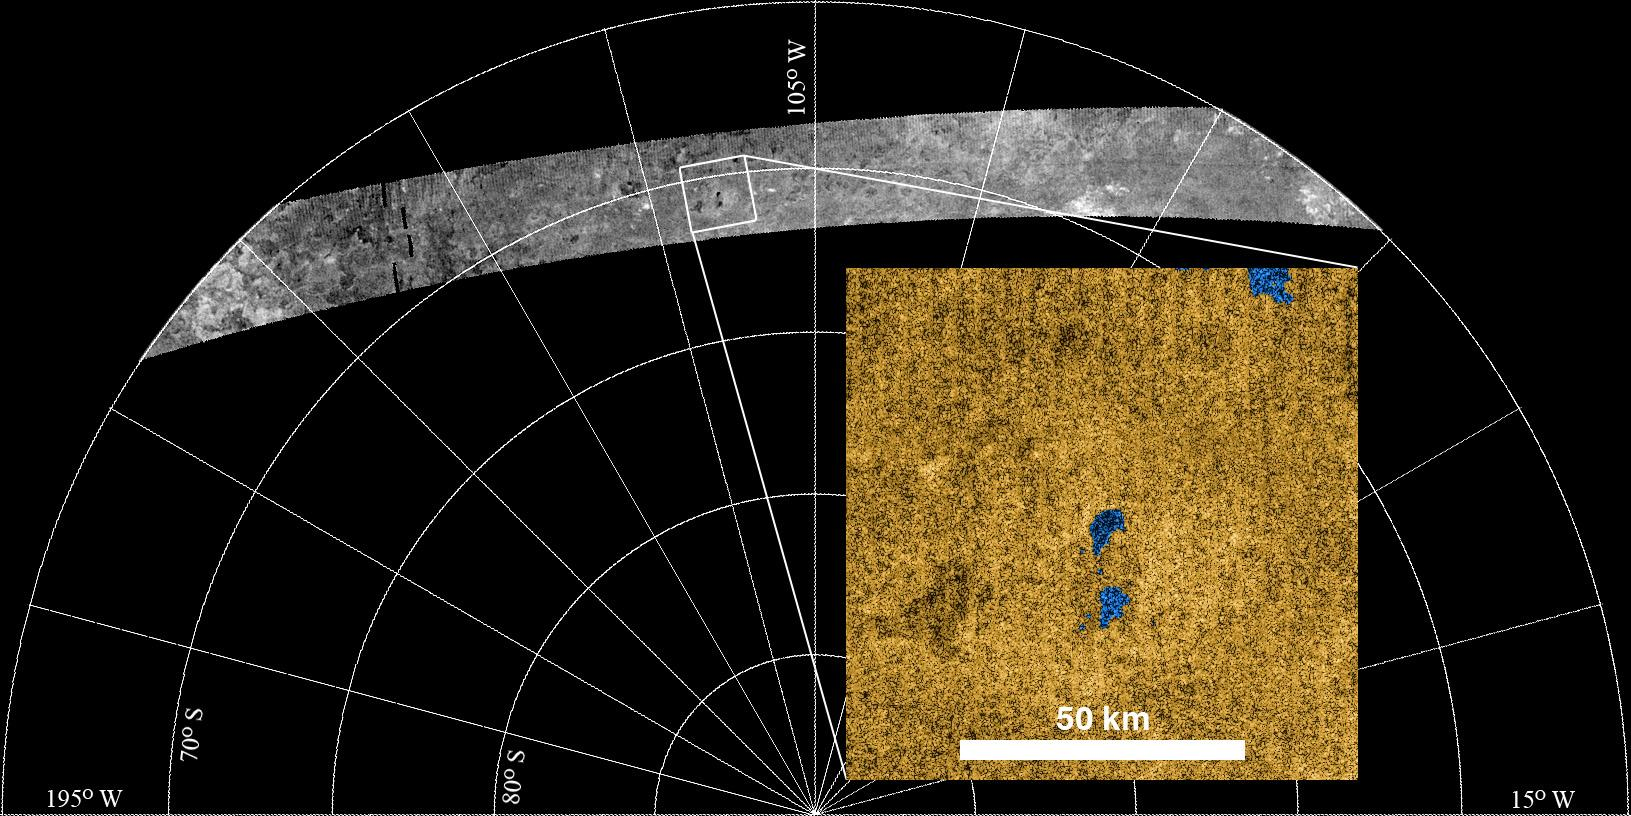 Cassini radar images of a portion of Titan's surface on an illustration showing the relative size of the moon